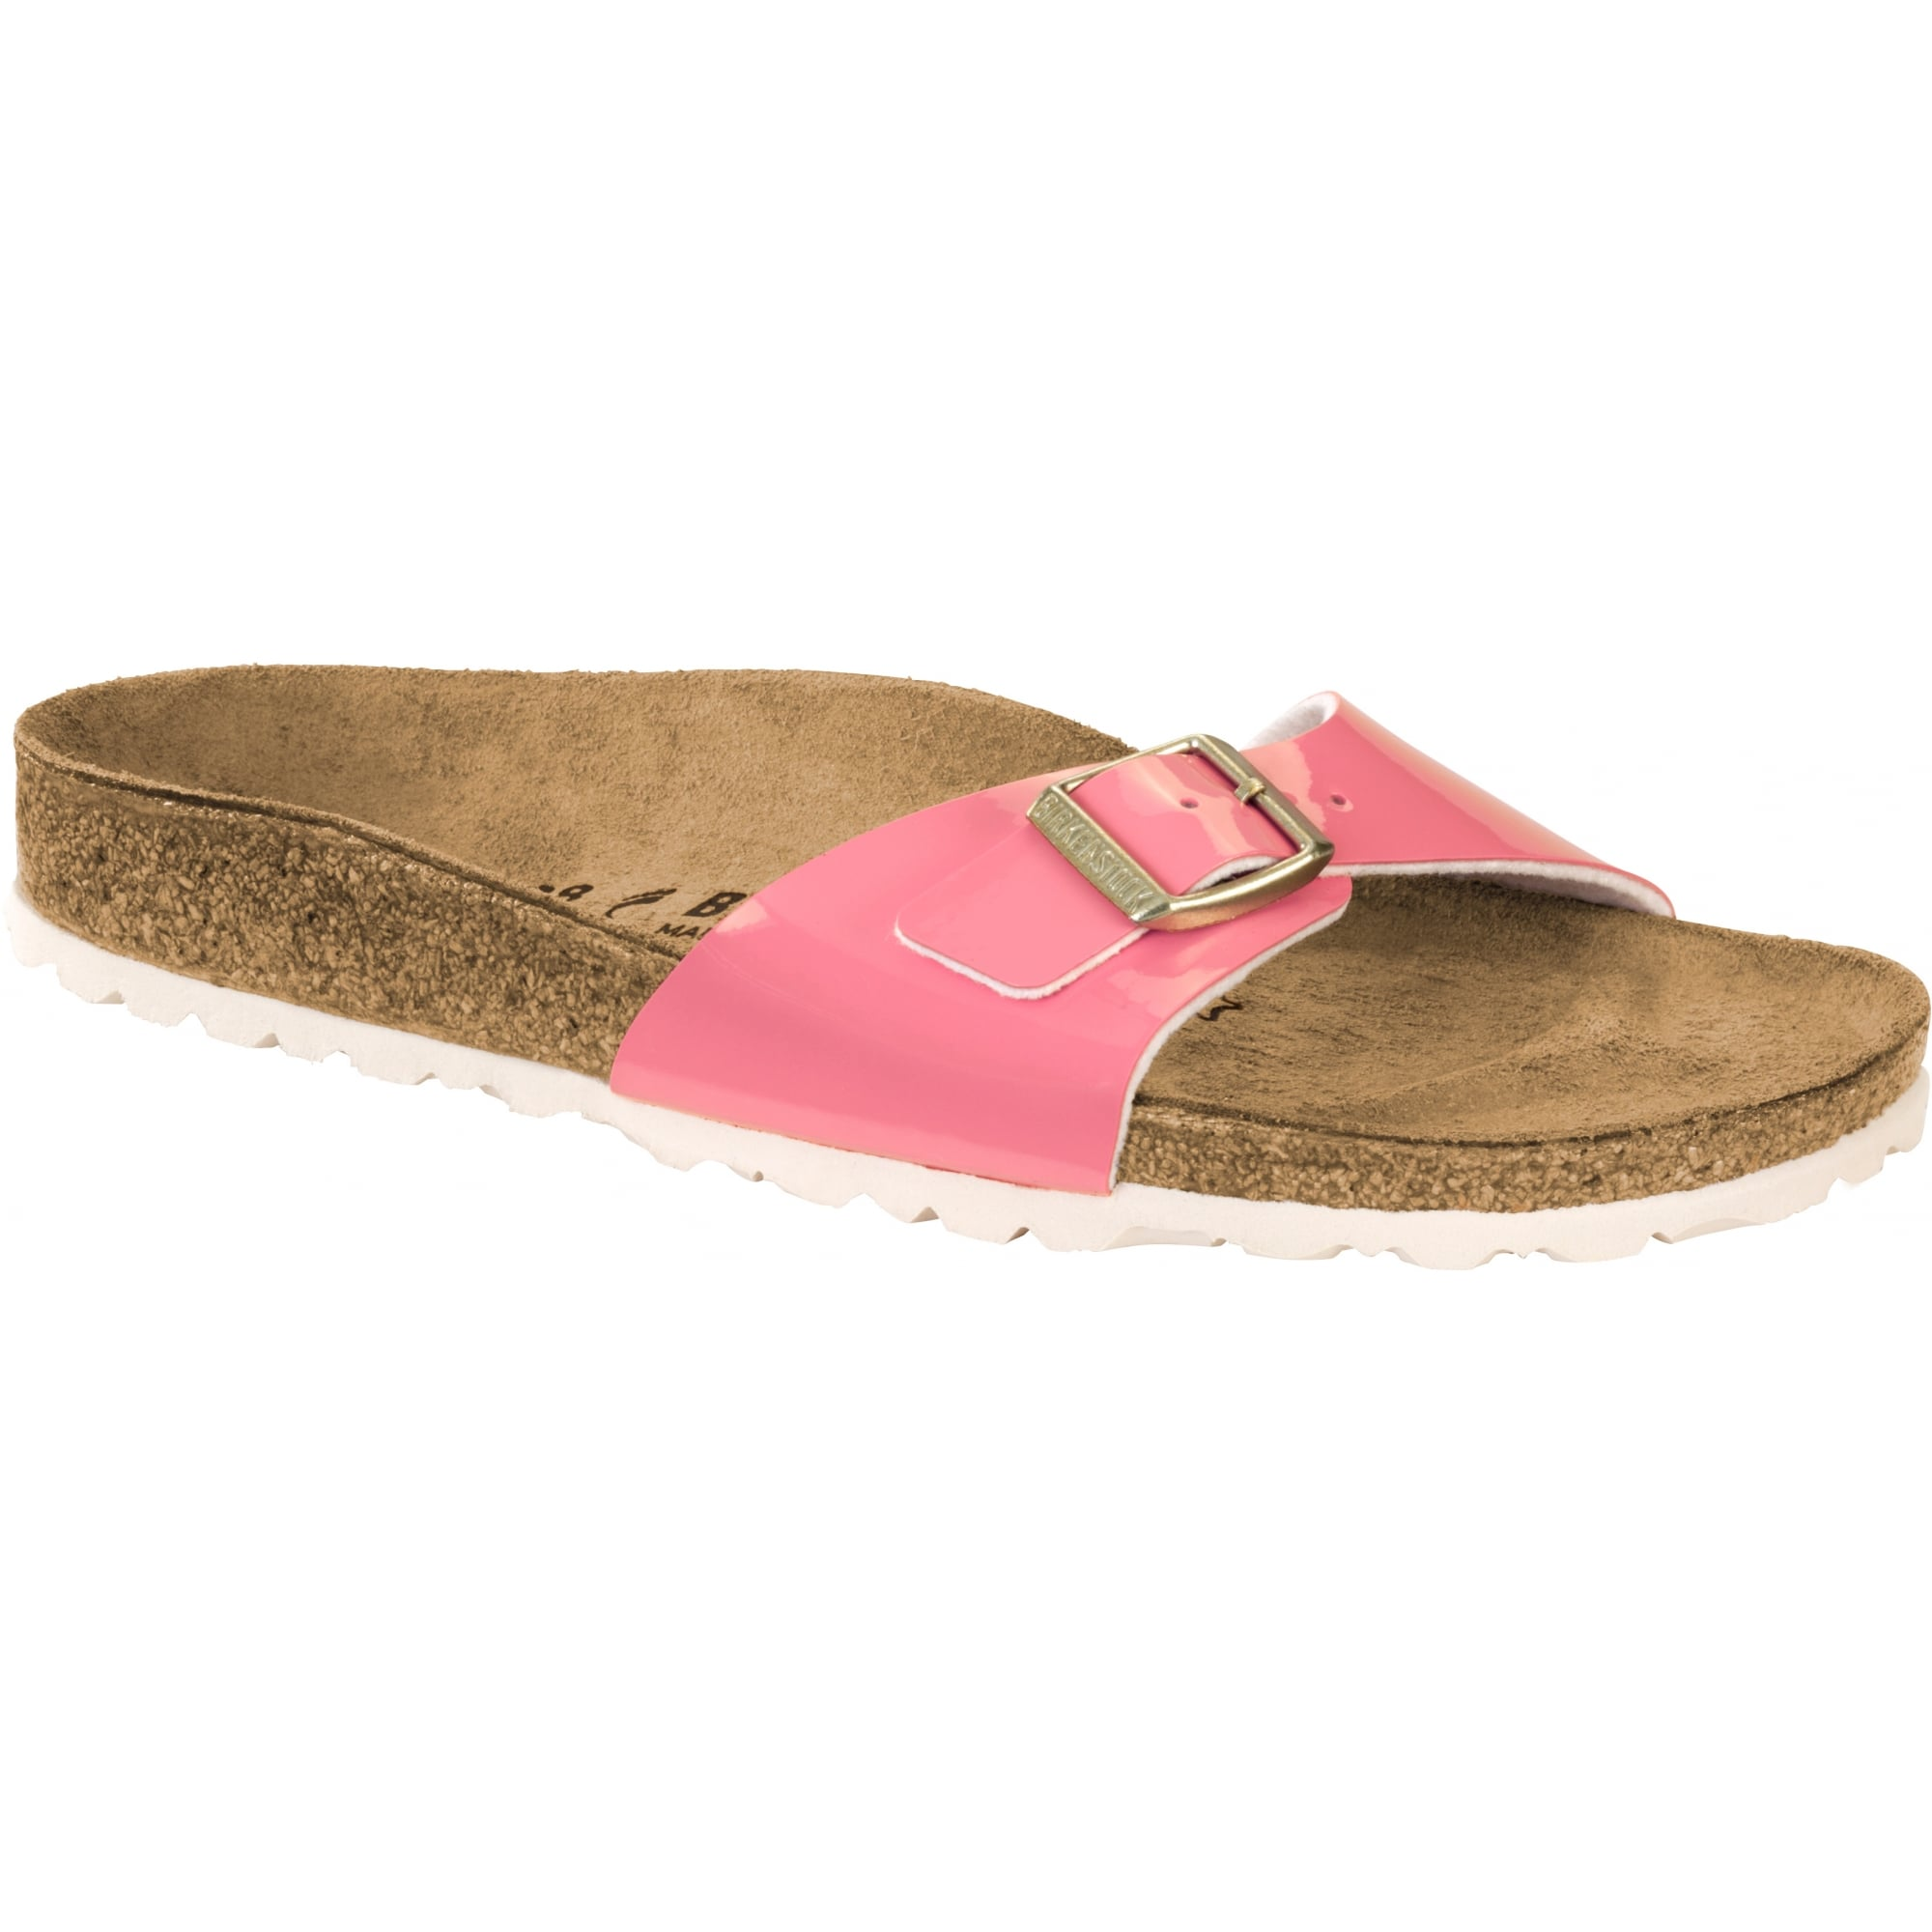 Birkenstock Madrid BF Sandal Patent 1008494 Two Tone Cream Coral NARROW